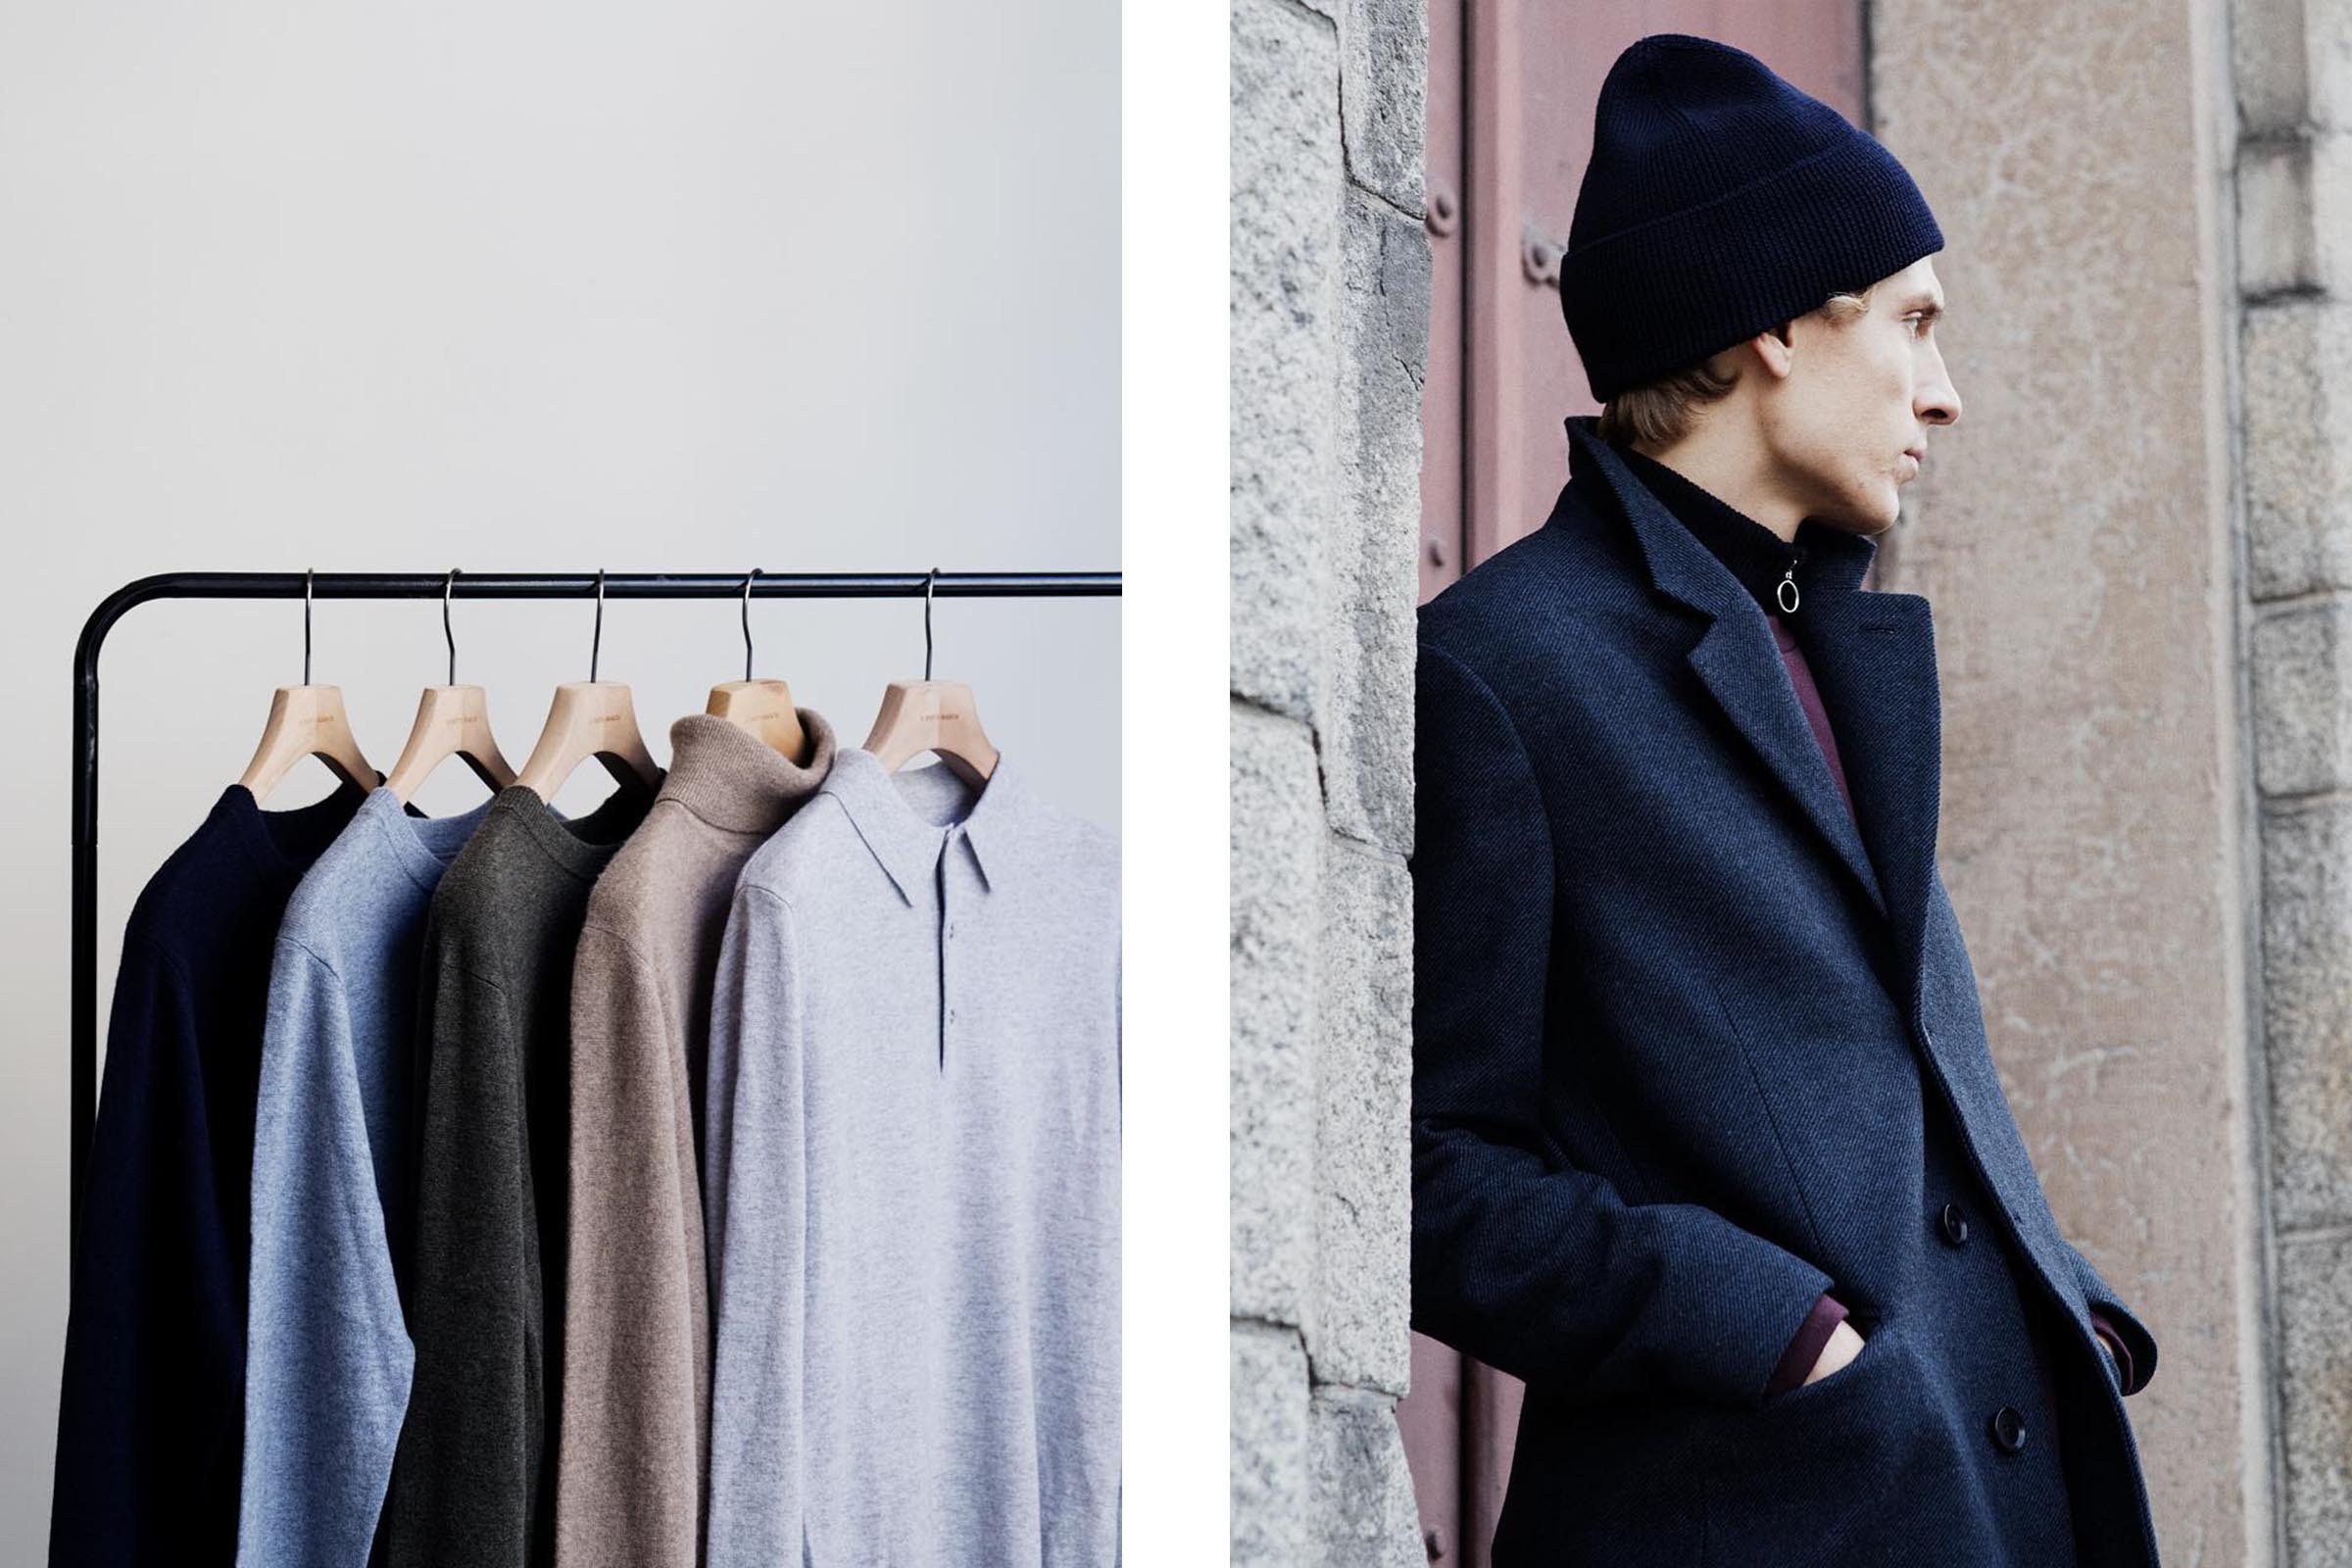 5 Sustainable Menswear Brands To Know - A Day's March